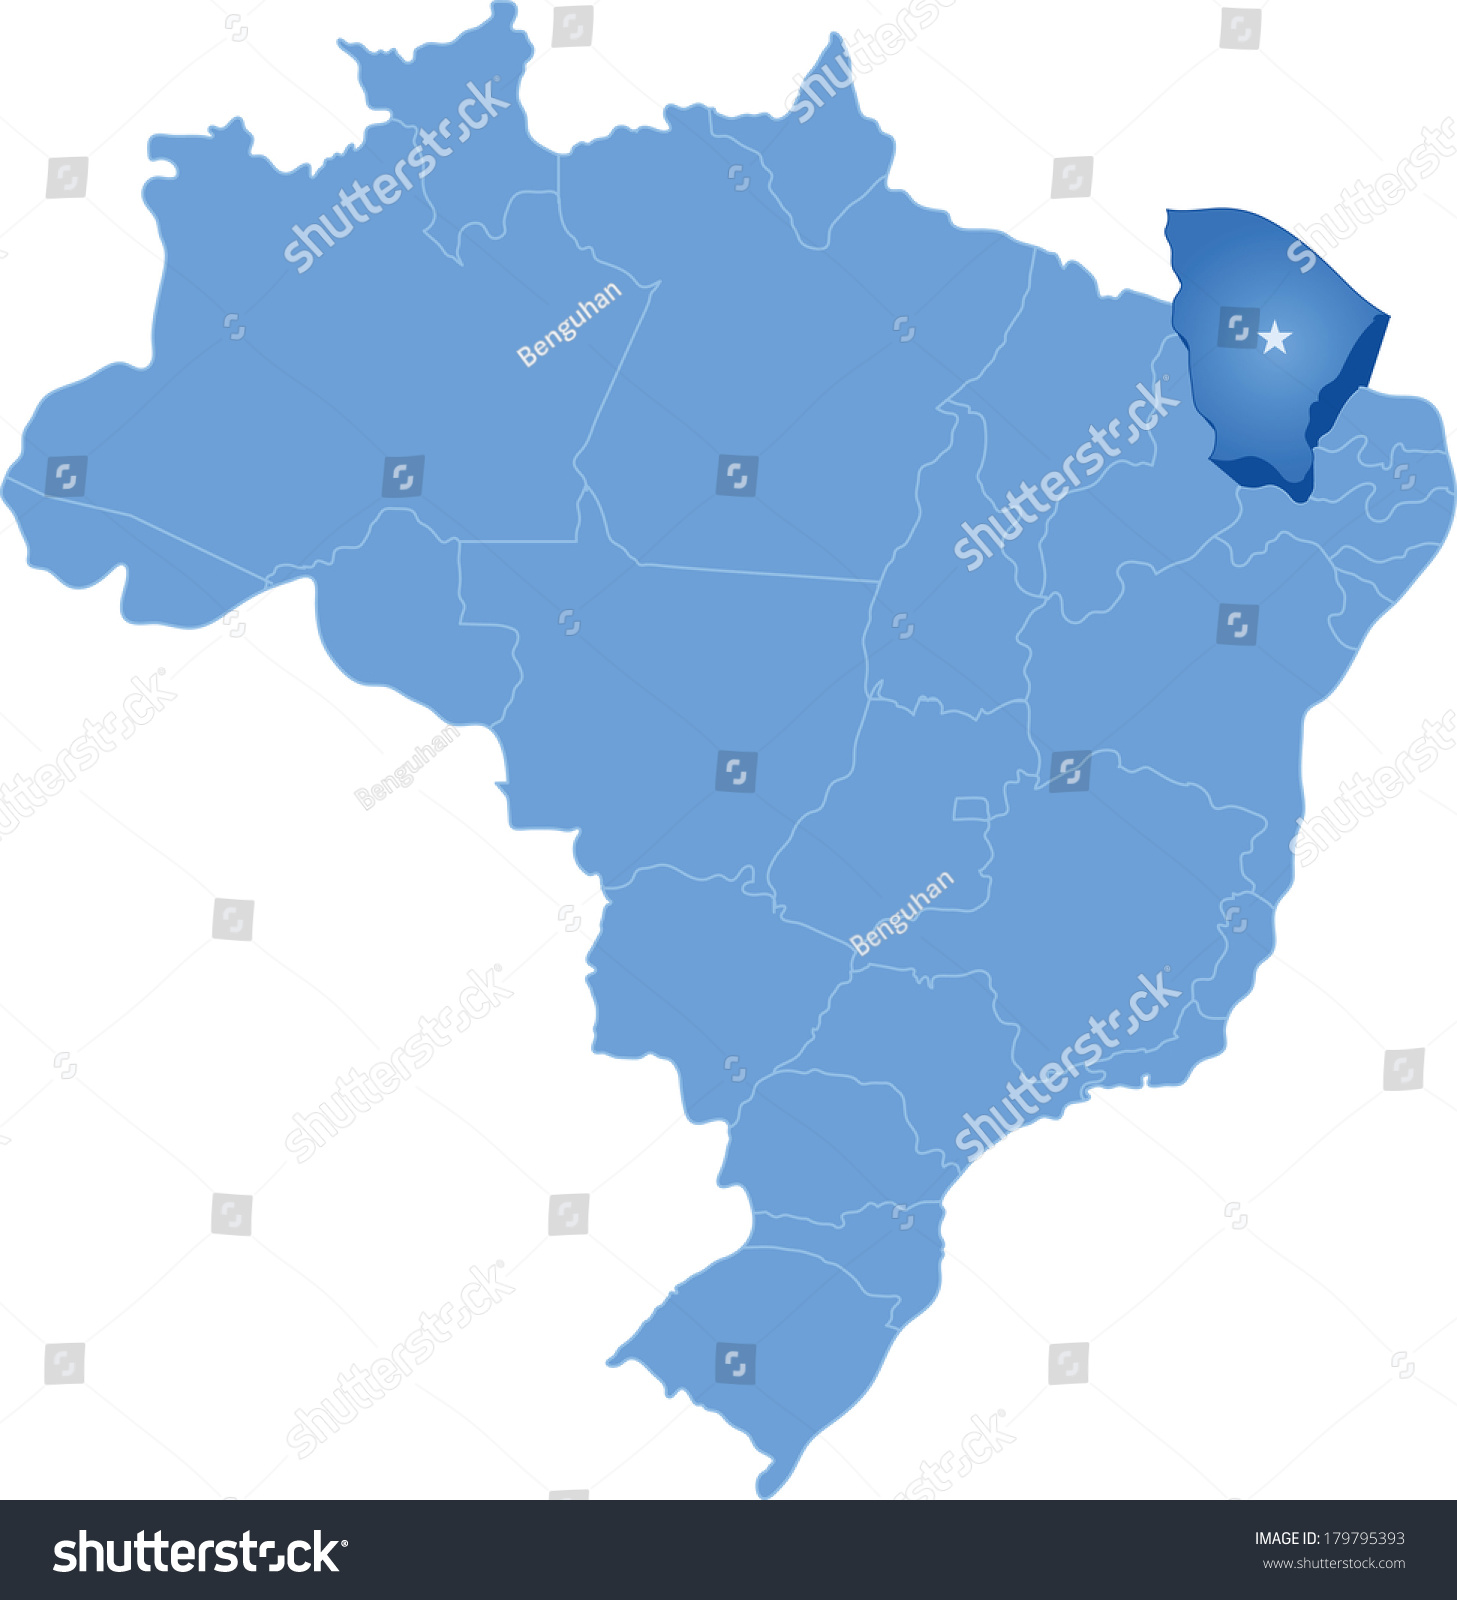 Political Map Brazil All States Where Stock Vector - Political map of brazil